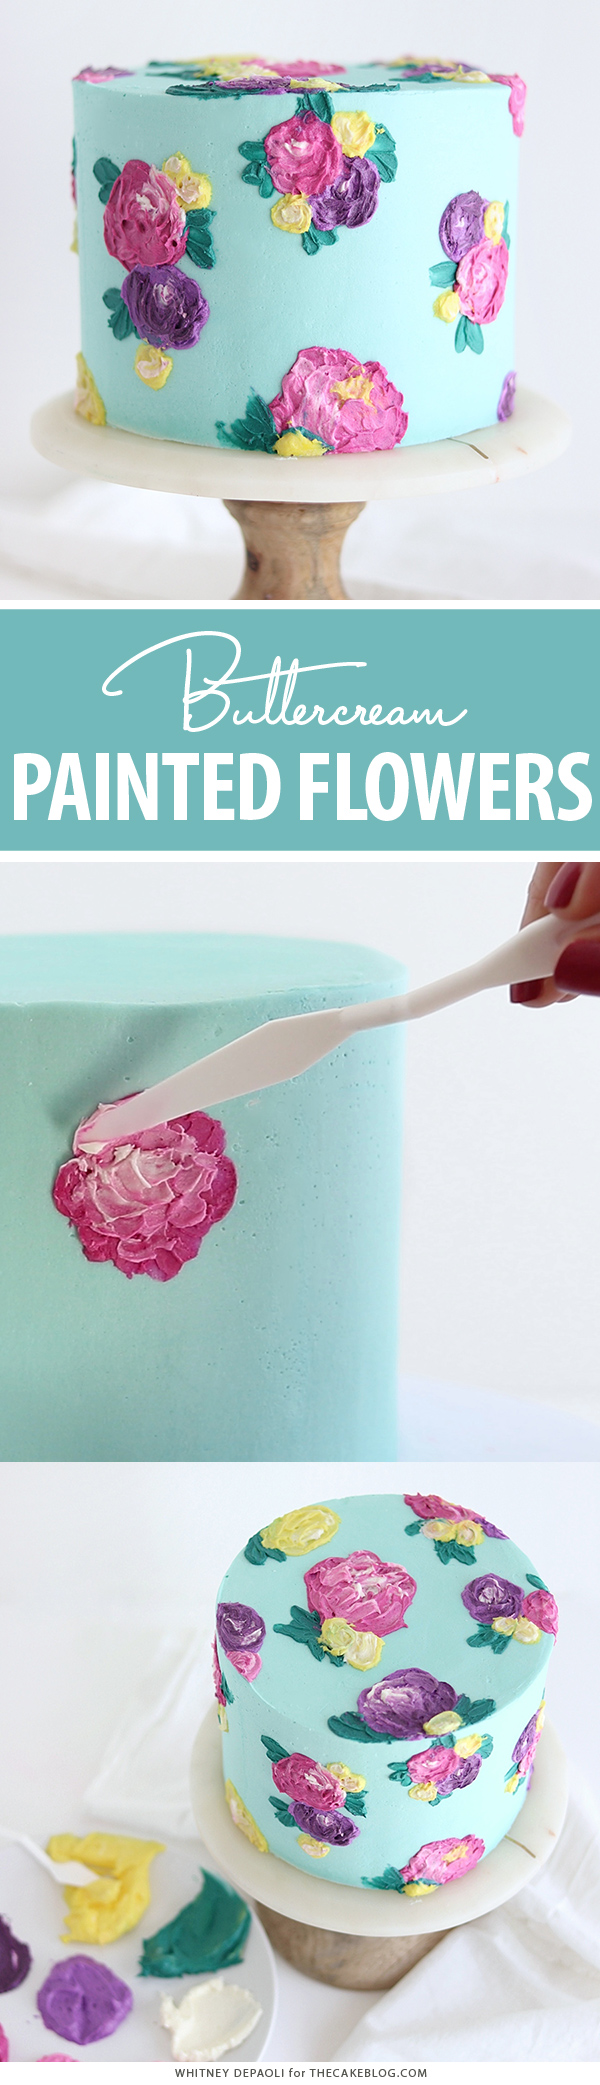 Painted Buttercream Flower Cake | by Whitney DePaoli for TheCakeBlog.com